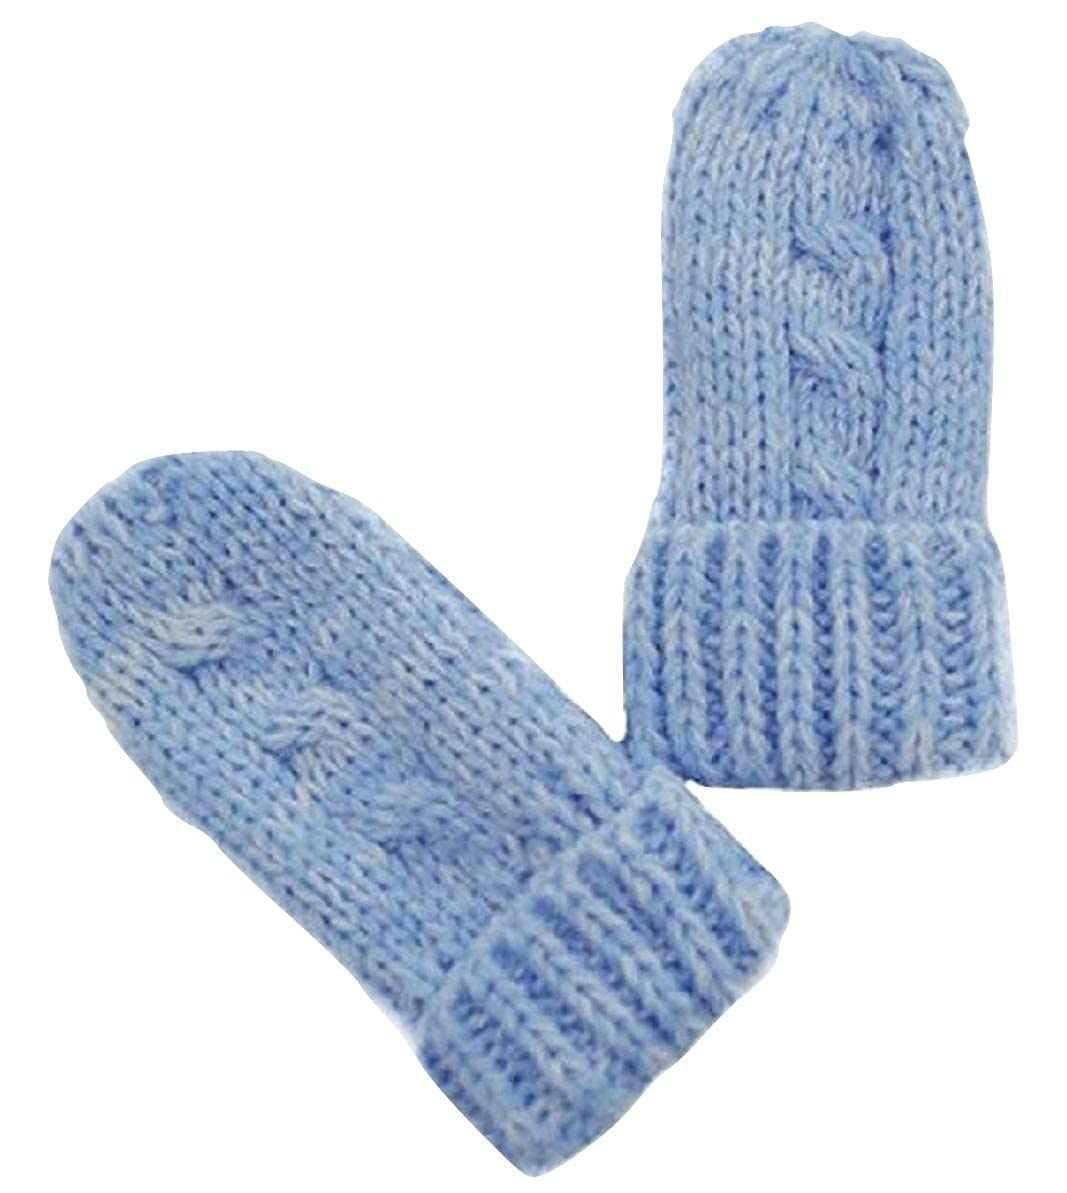 QBE Baby Boy Girl Knitted Mittens Gloves Mitts Size 0-6 months (Blue Cable Knit)